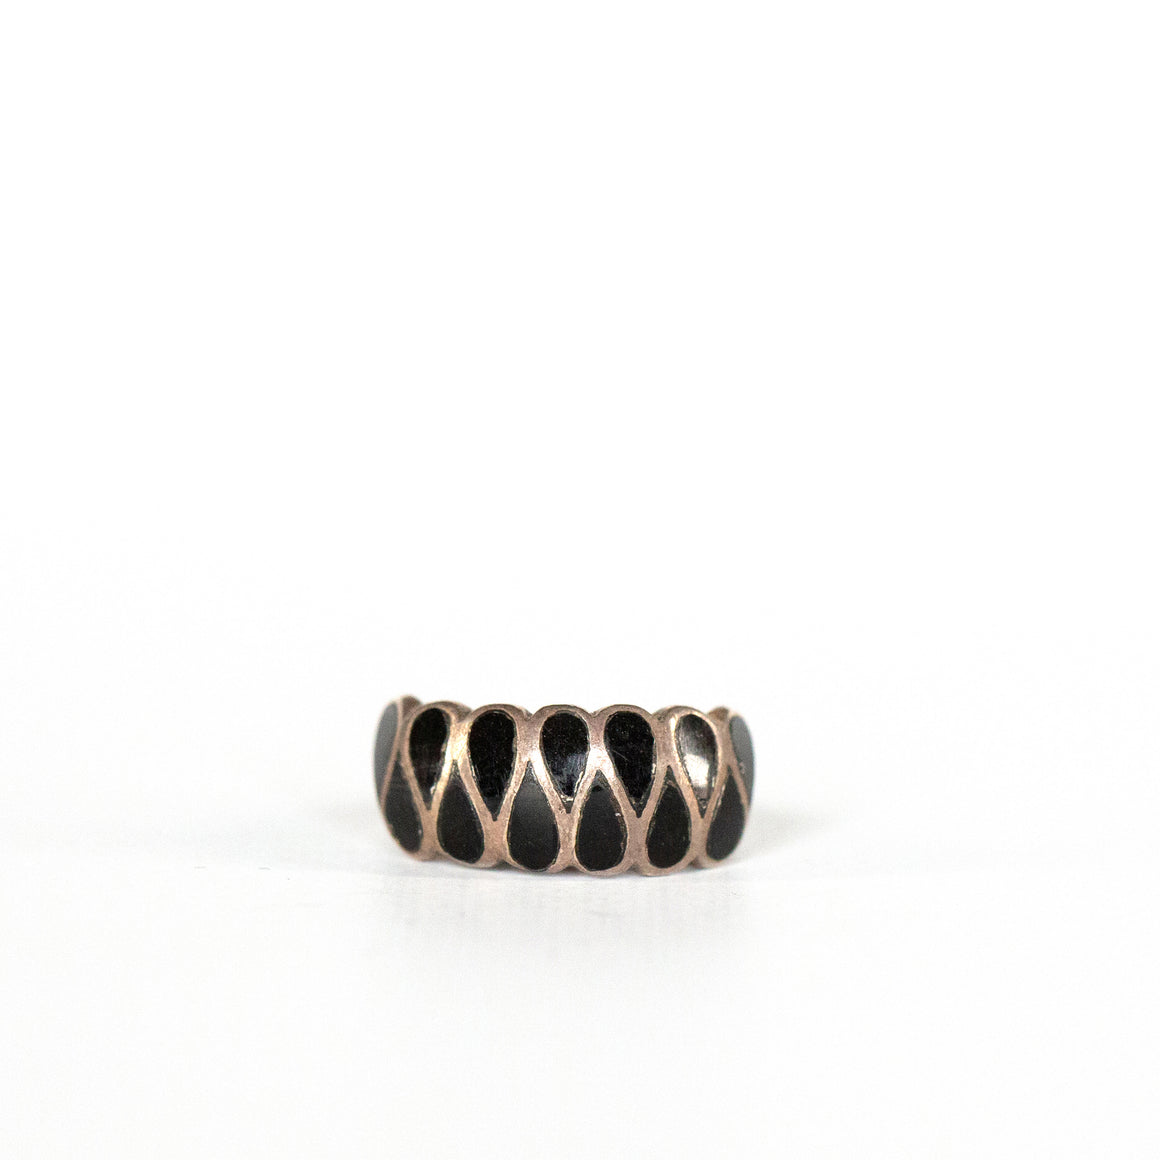 VINTAGE JEWELRY | LITTLE BLACK STERLING RING (SIZE 4)